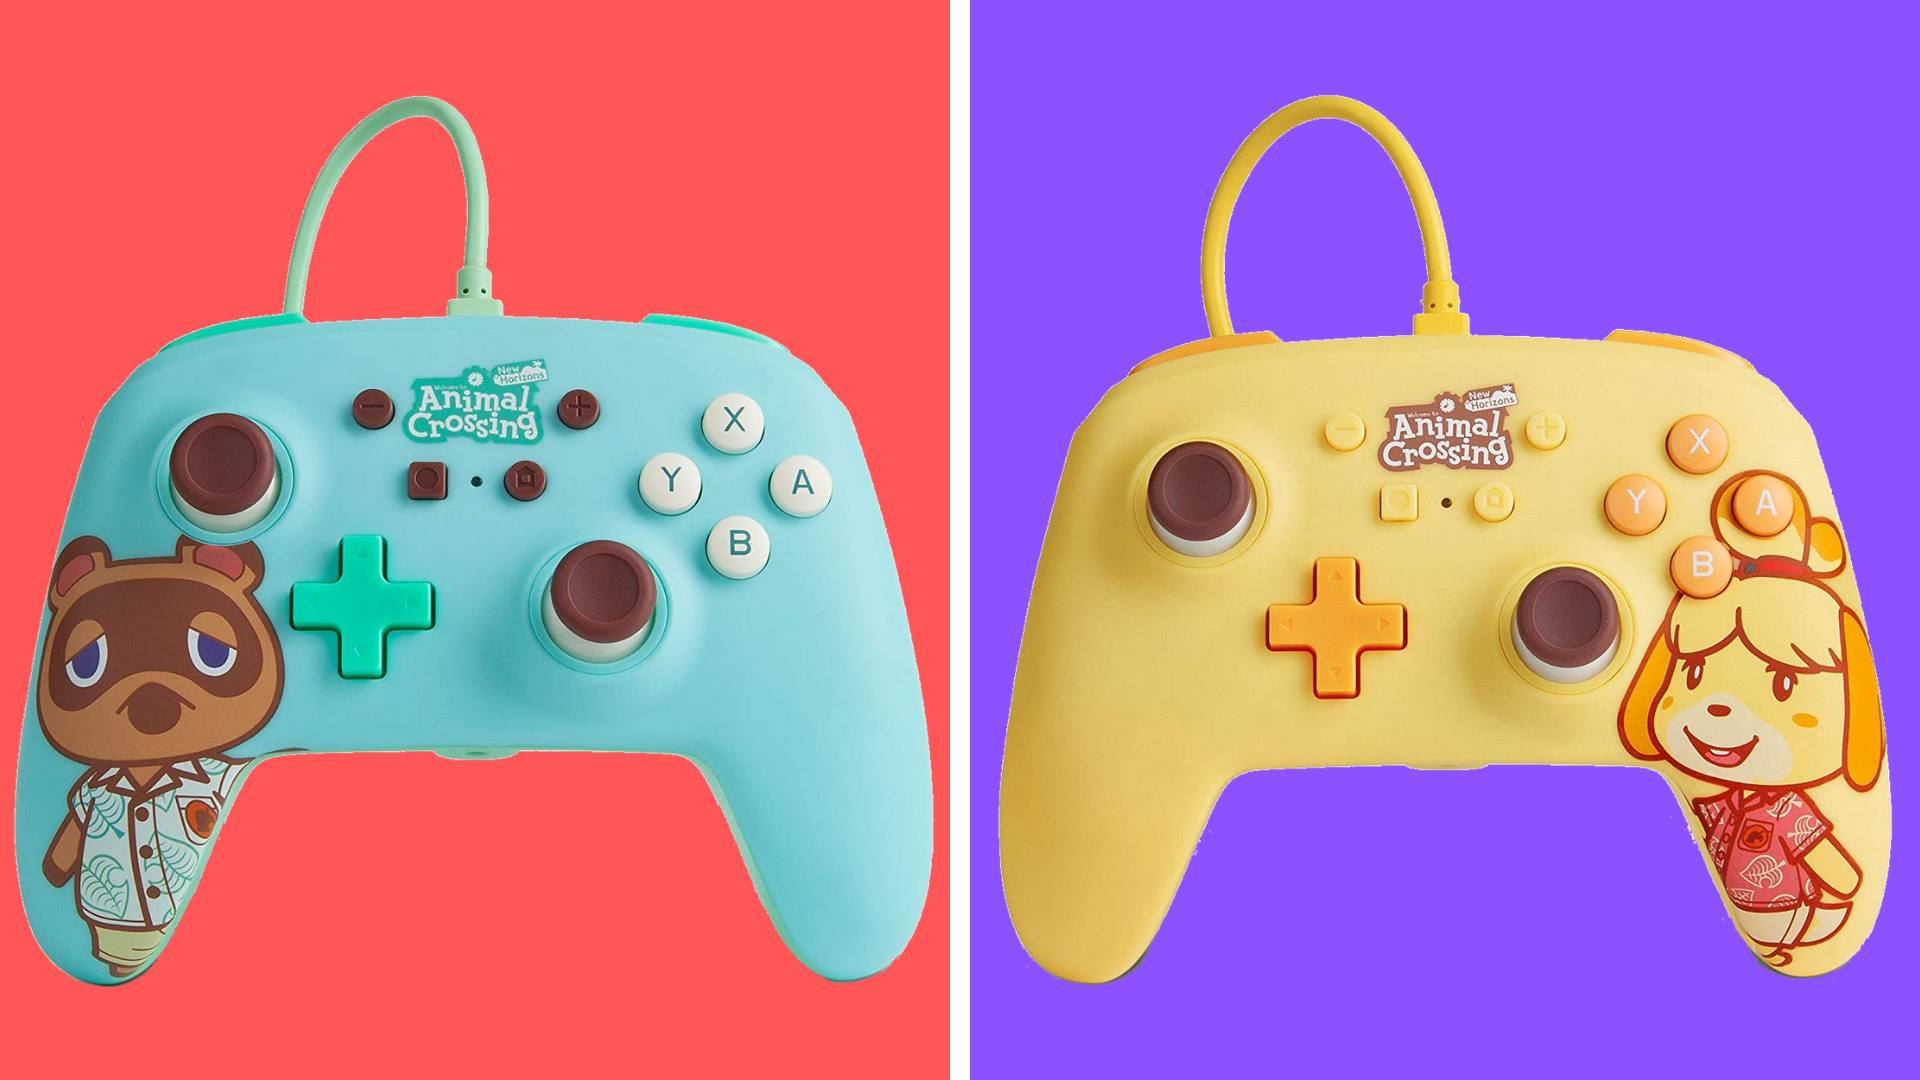 Quick! New Animal Crossing Nintendo Switch controllers are available for pre-order at Amazon